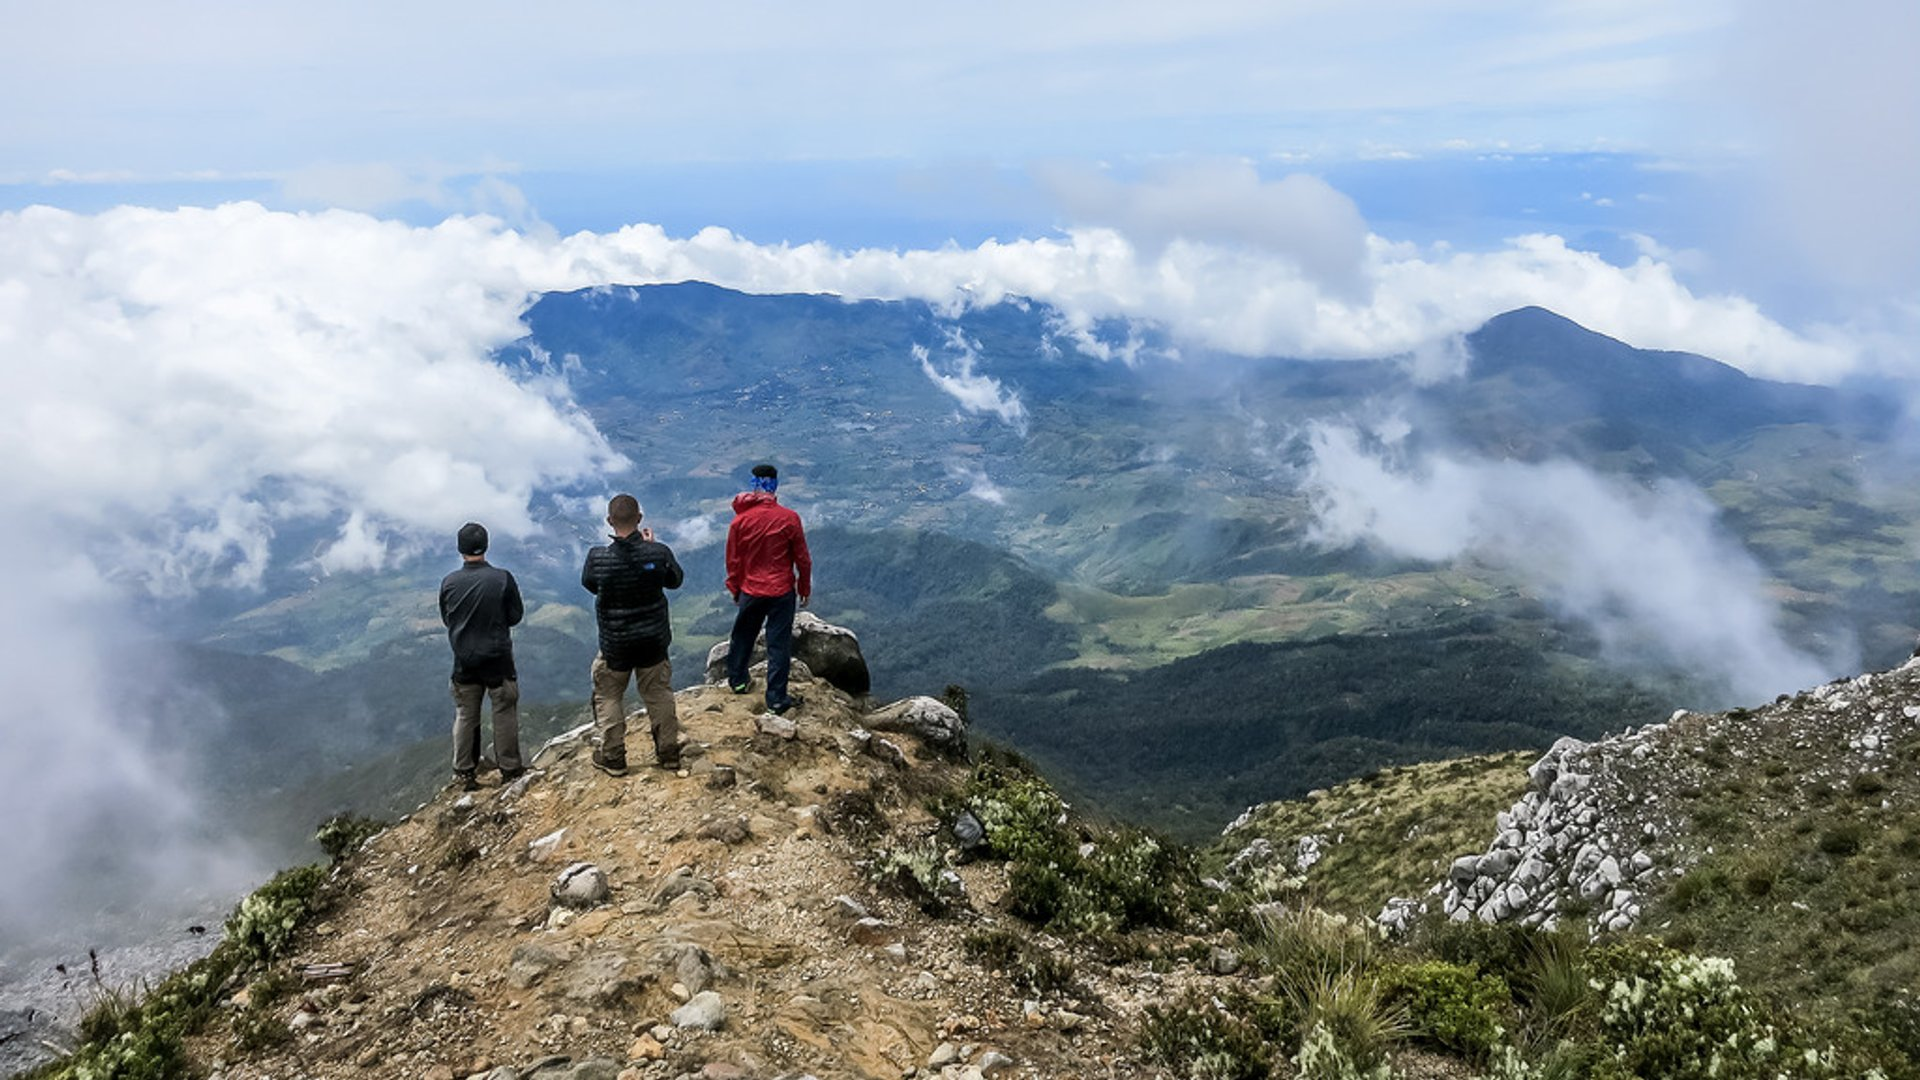 Climbing Mount Apo in Philippines - Best Season